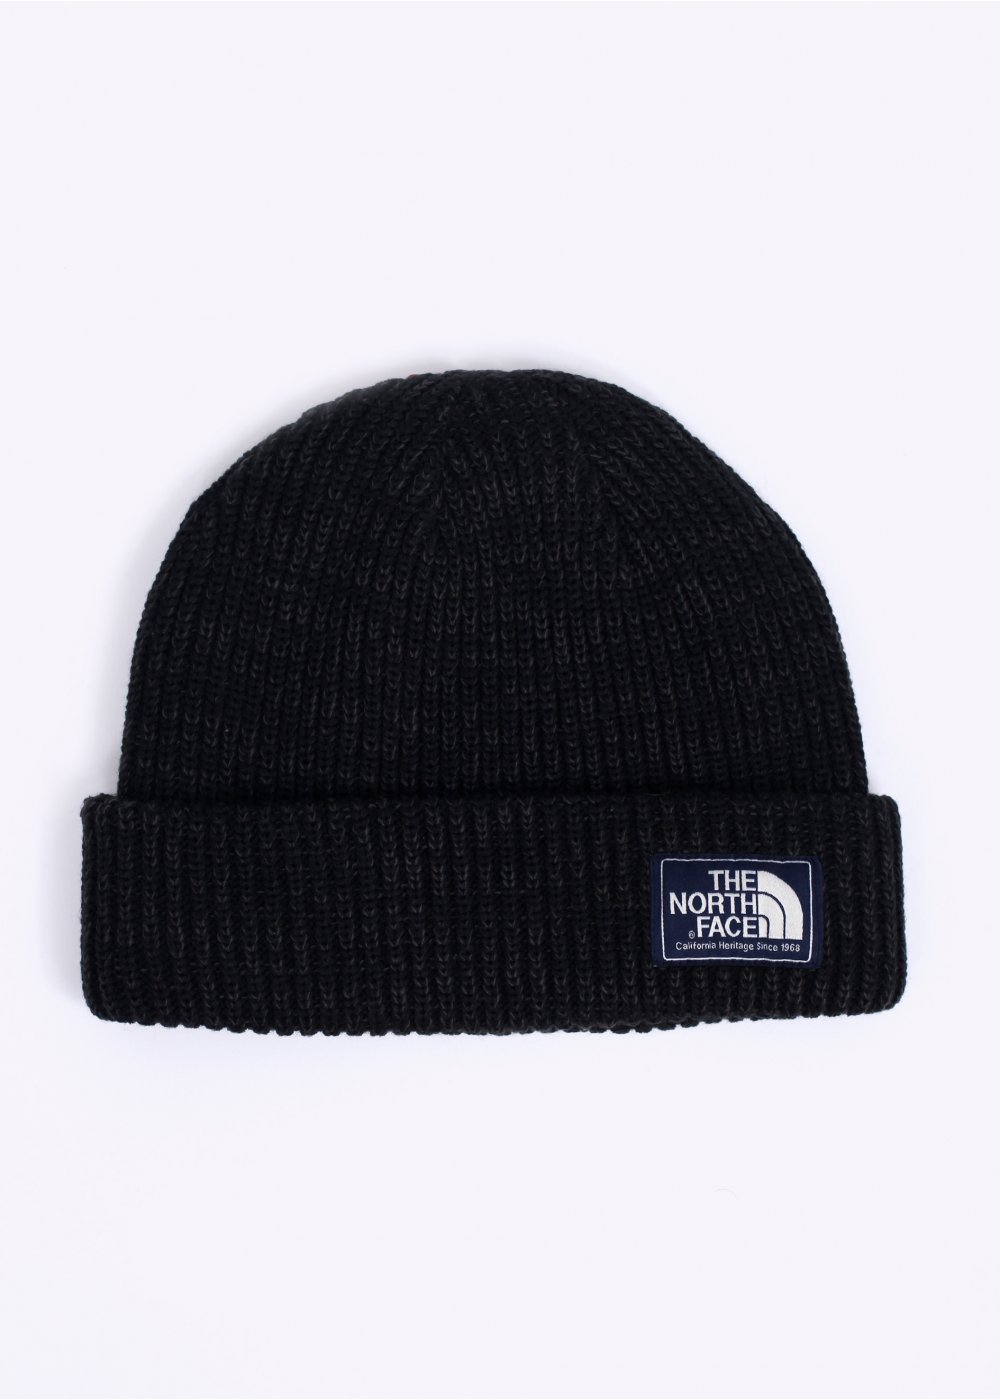 The North Face Salty Dog Beanie Black